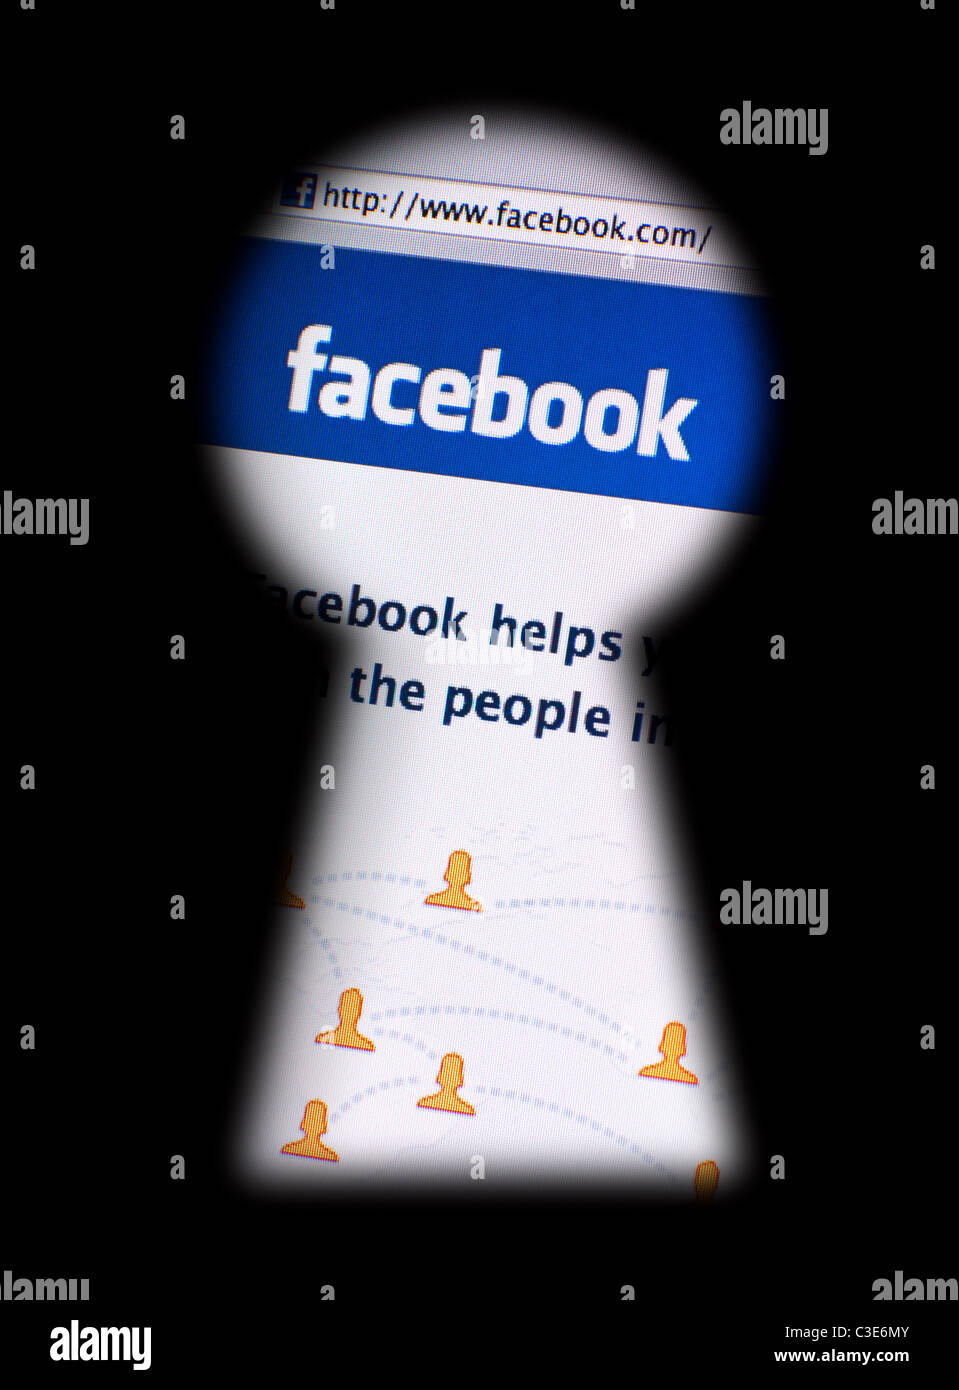 Muenster, Germany - May 7, 2011: facebook.com website seen through a blurred keyhole. Photography concept of data - Stock Image